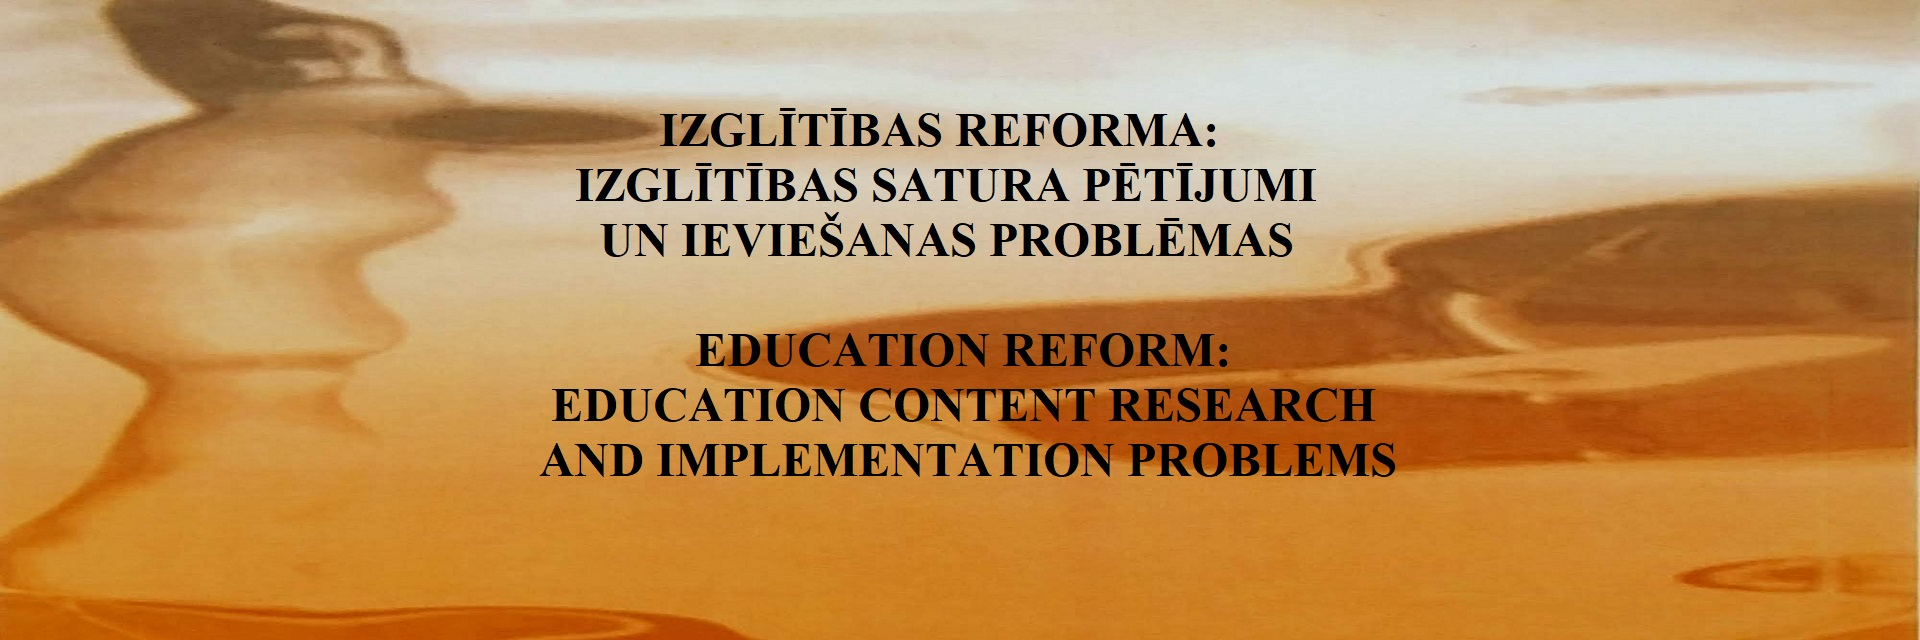 Education Reform: Education Content Research and Implementation Problems